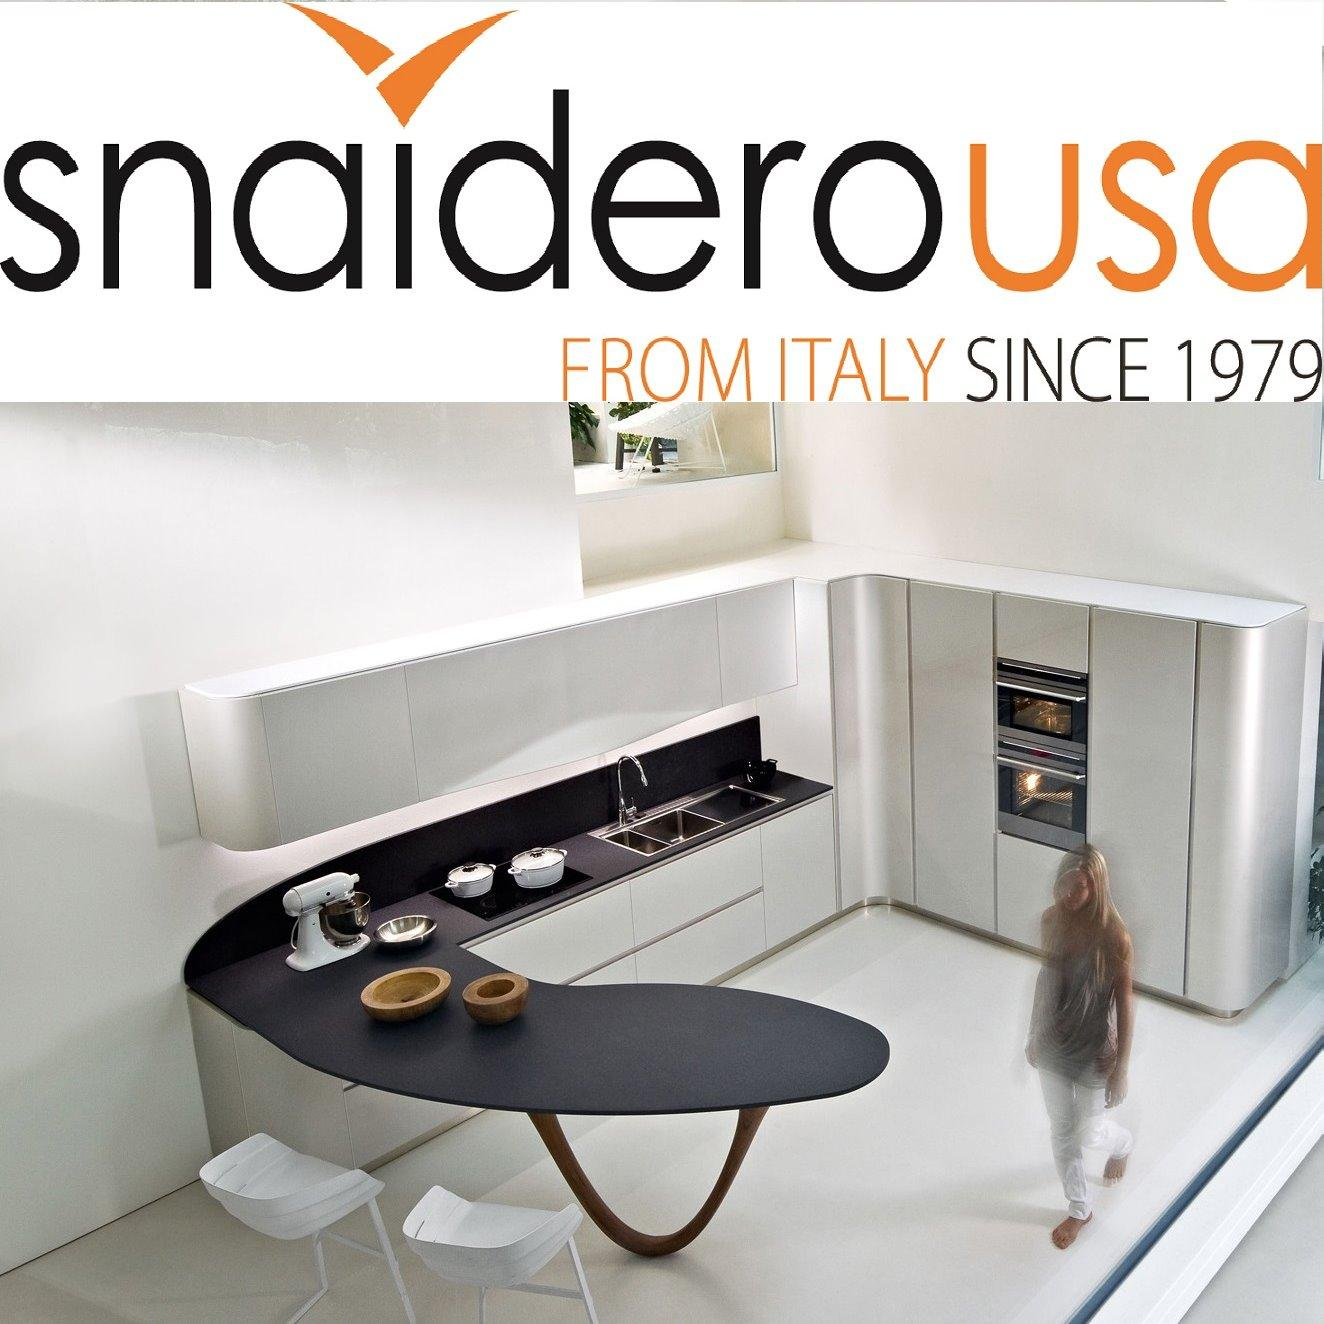 Studio Snaidero Bay Area